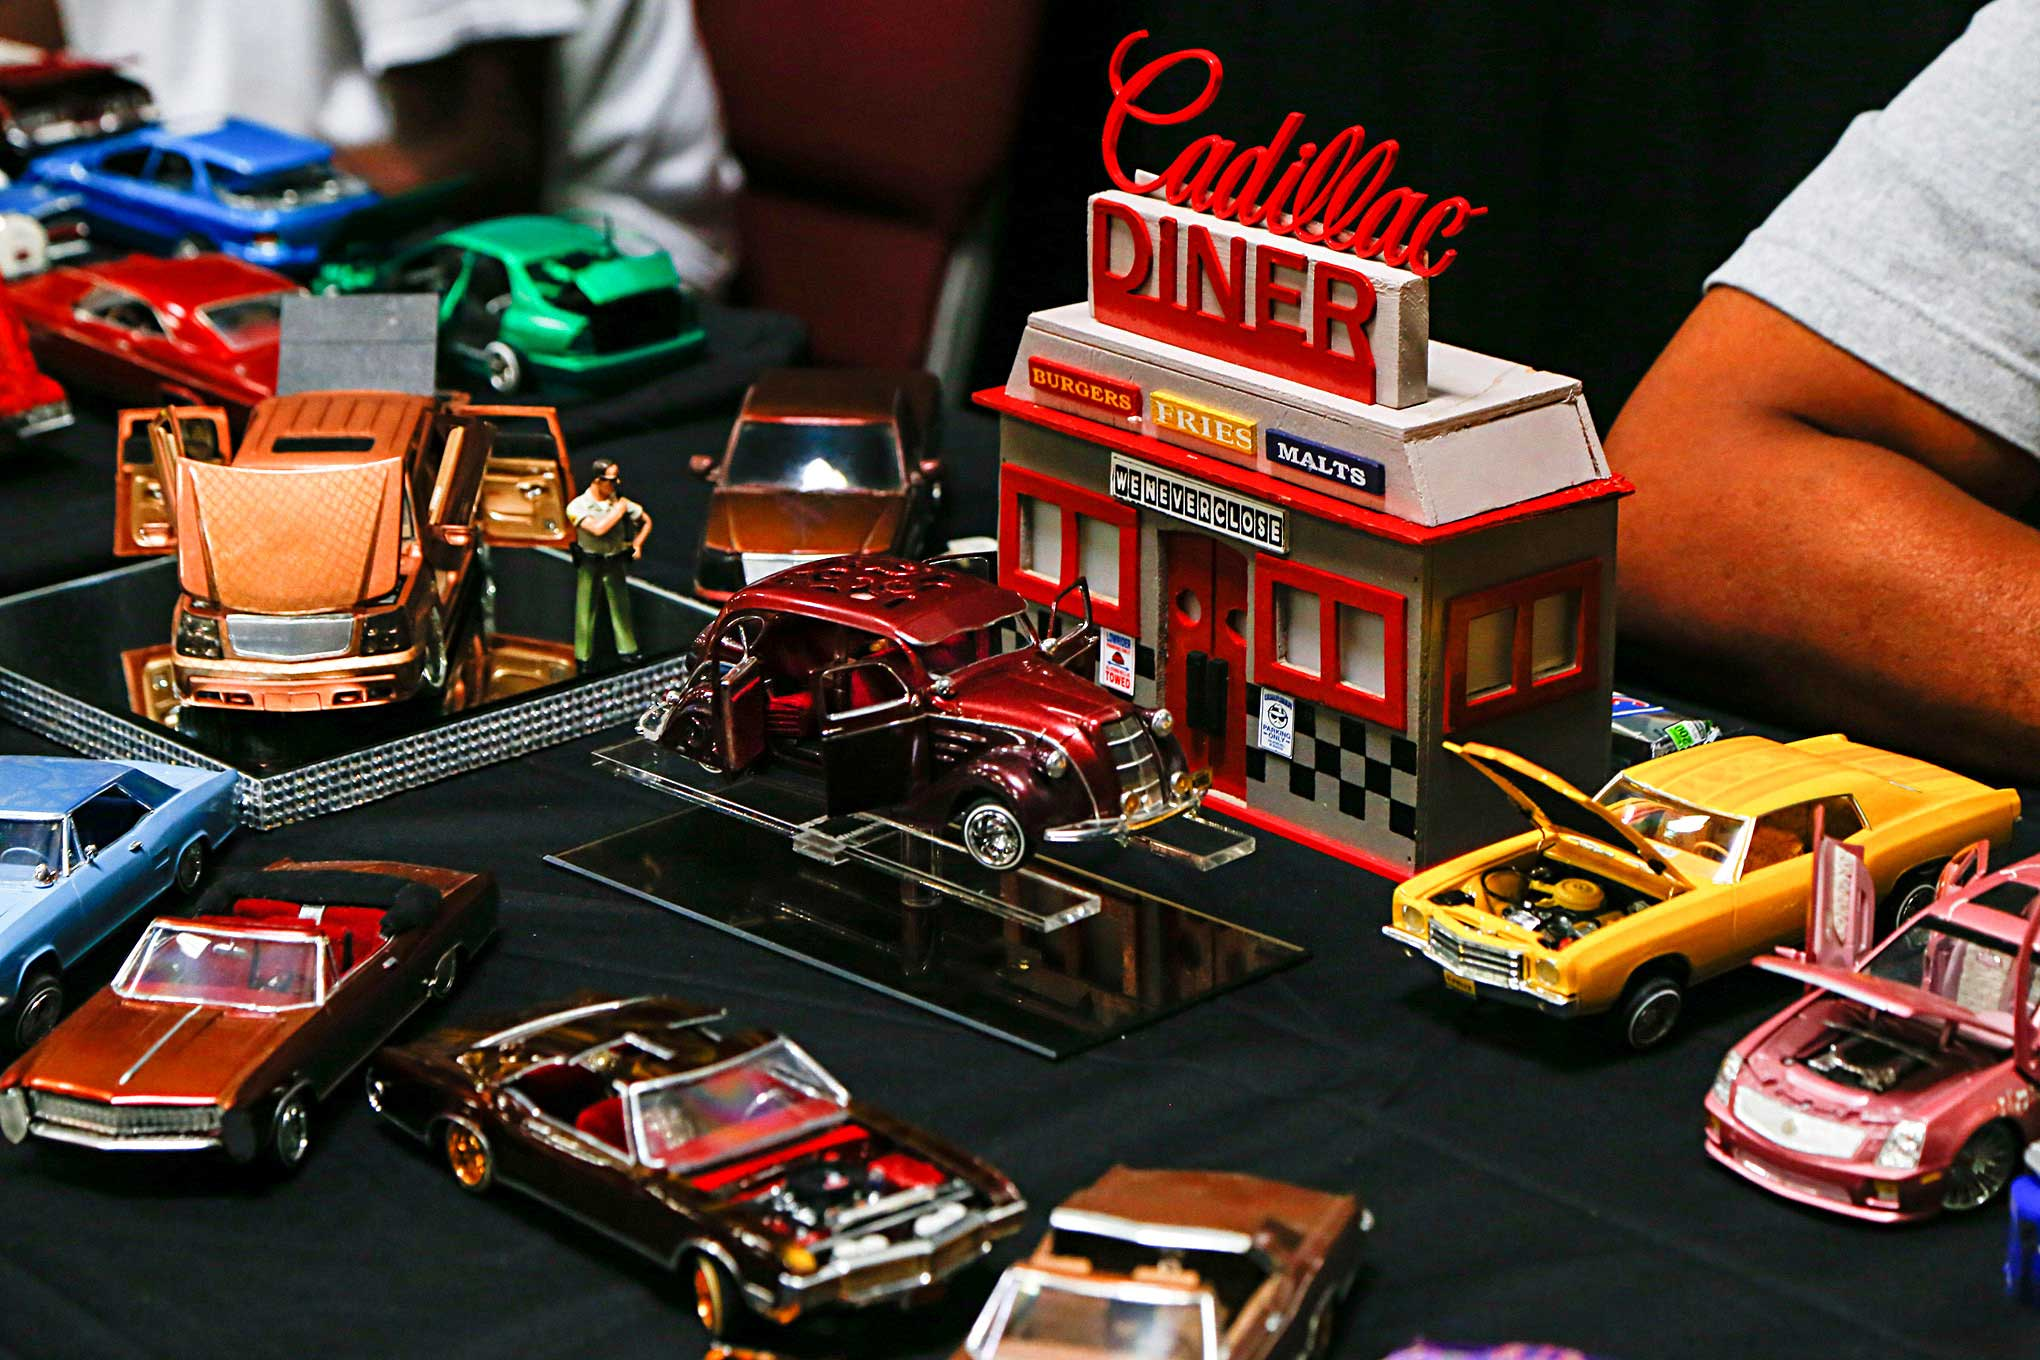 How To Make Your Car Faster >> Cadillac Fest VII Model Car Diner Diorama - Lowrider